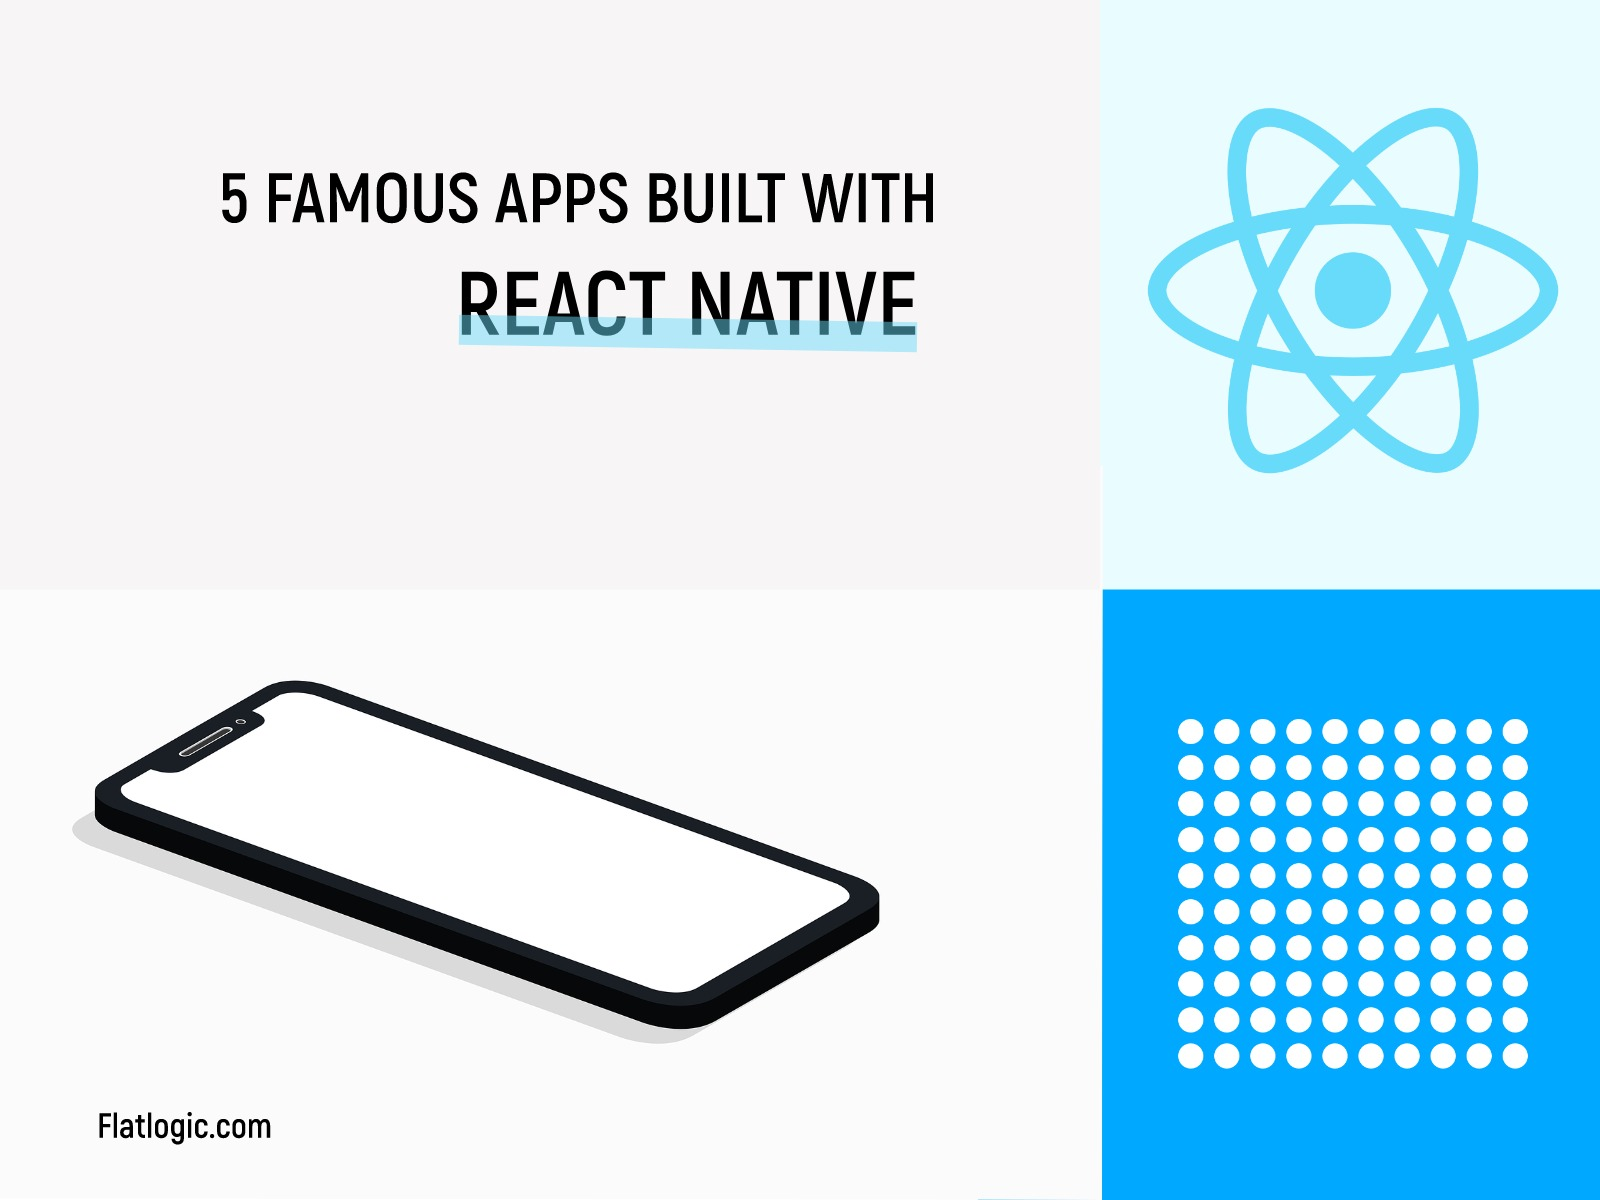 5 Famous Apps Built With React Native - Flatlogic Blog